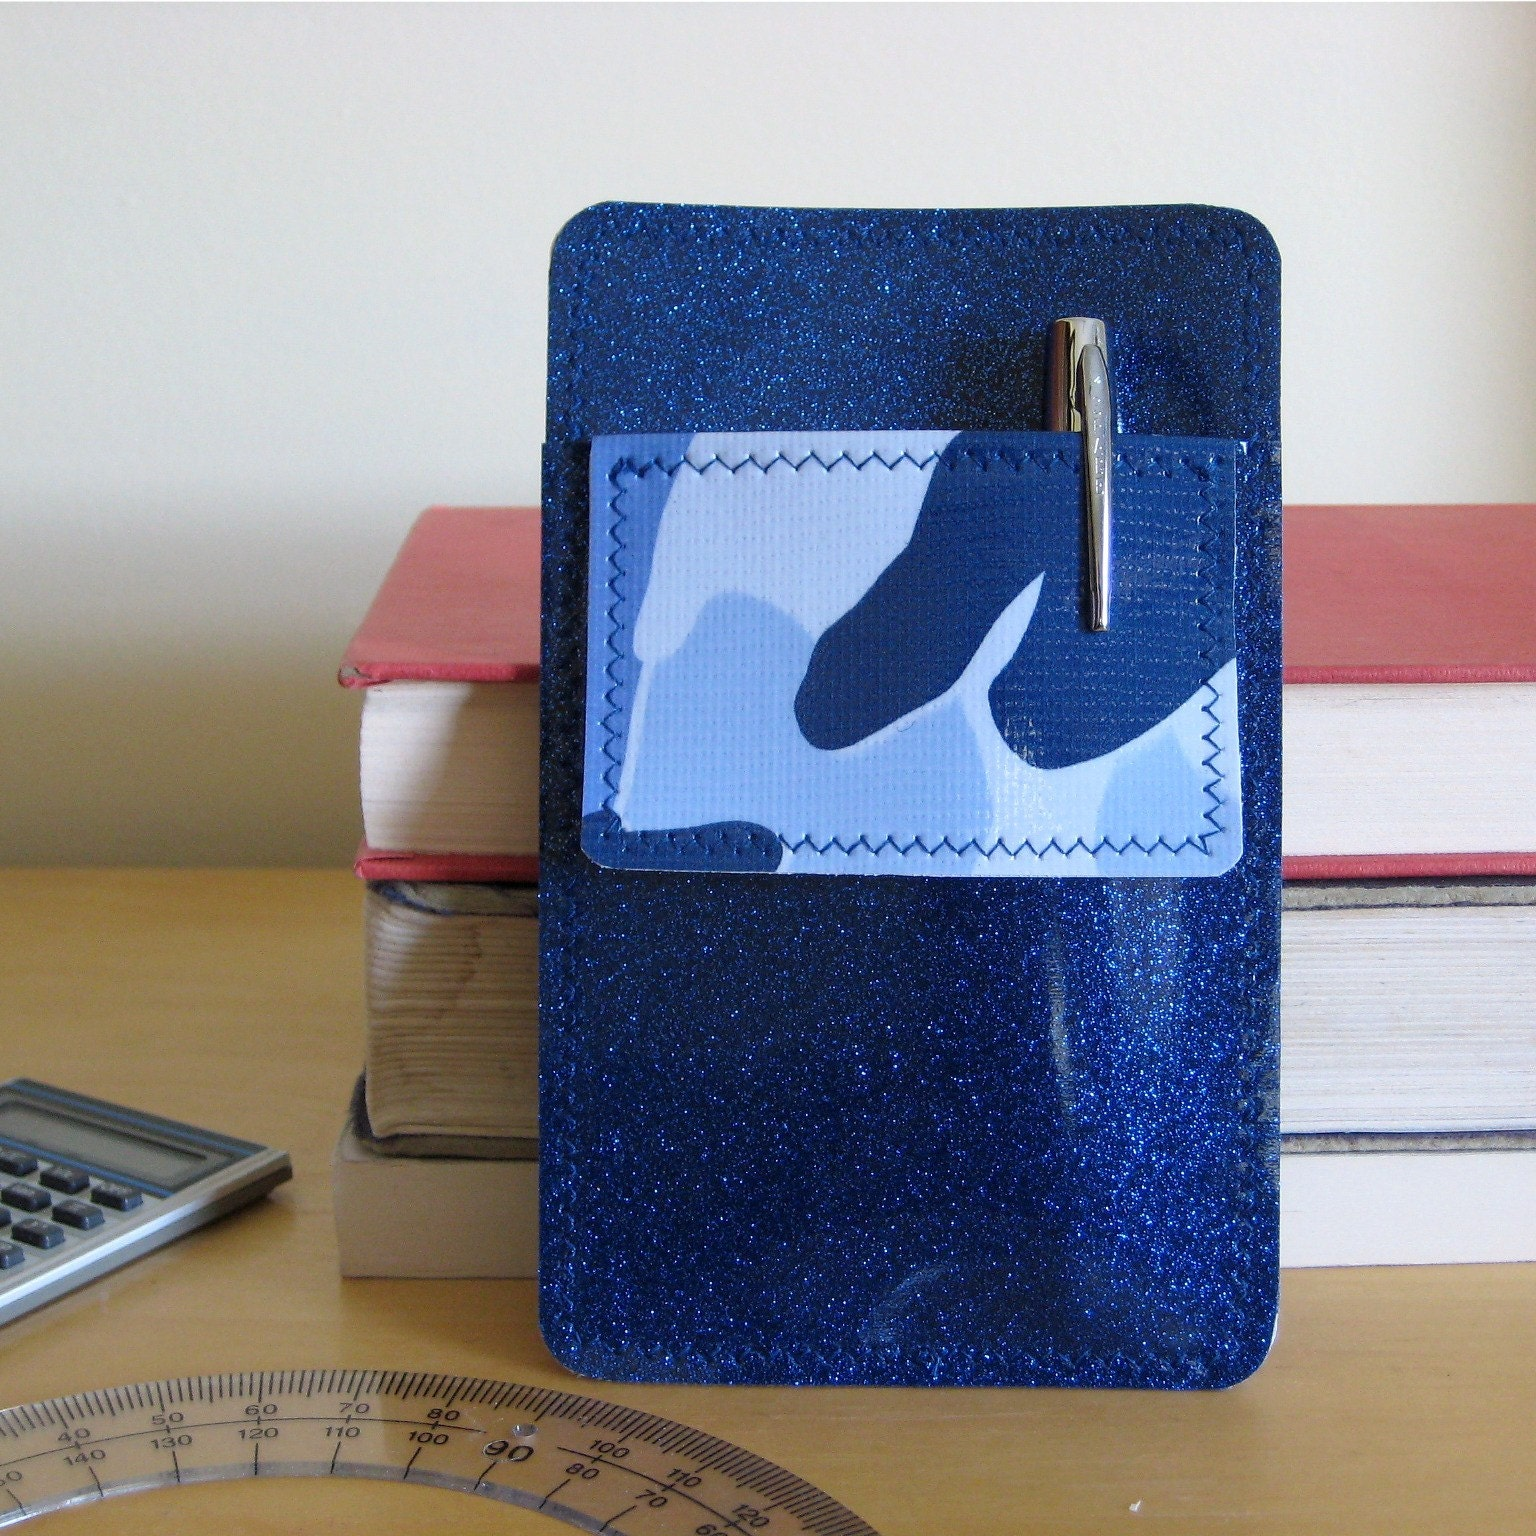 Nerd Power Pocket Protector In Royal Blue Sparkle By